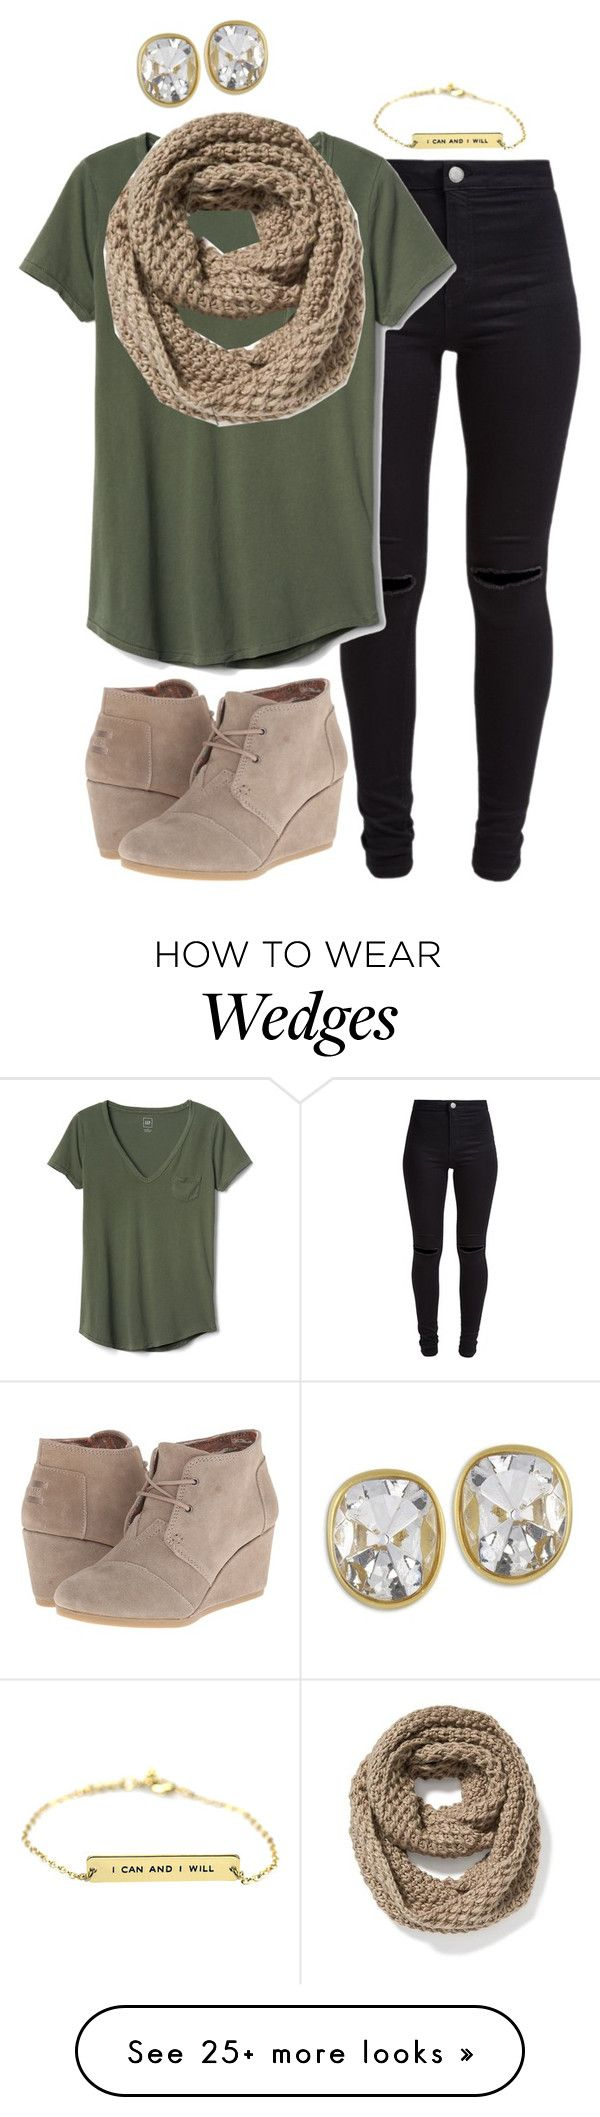 """Untitled #769"" by lsteckbauer on Polyvore featuring New Look, Gap, Old Navy, TOMS and Kenneth Jay Lane"